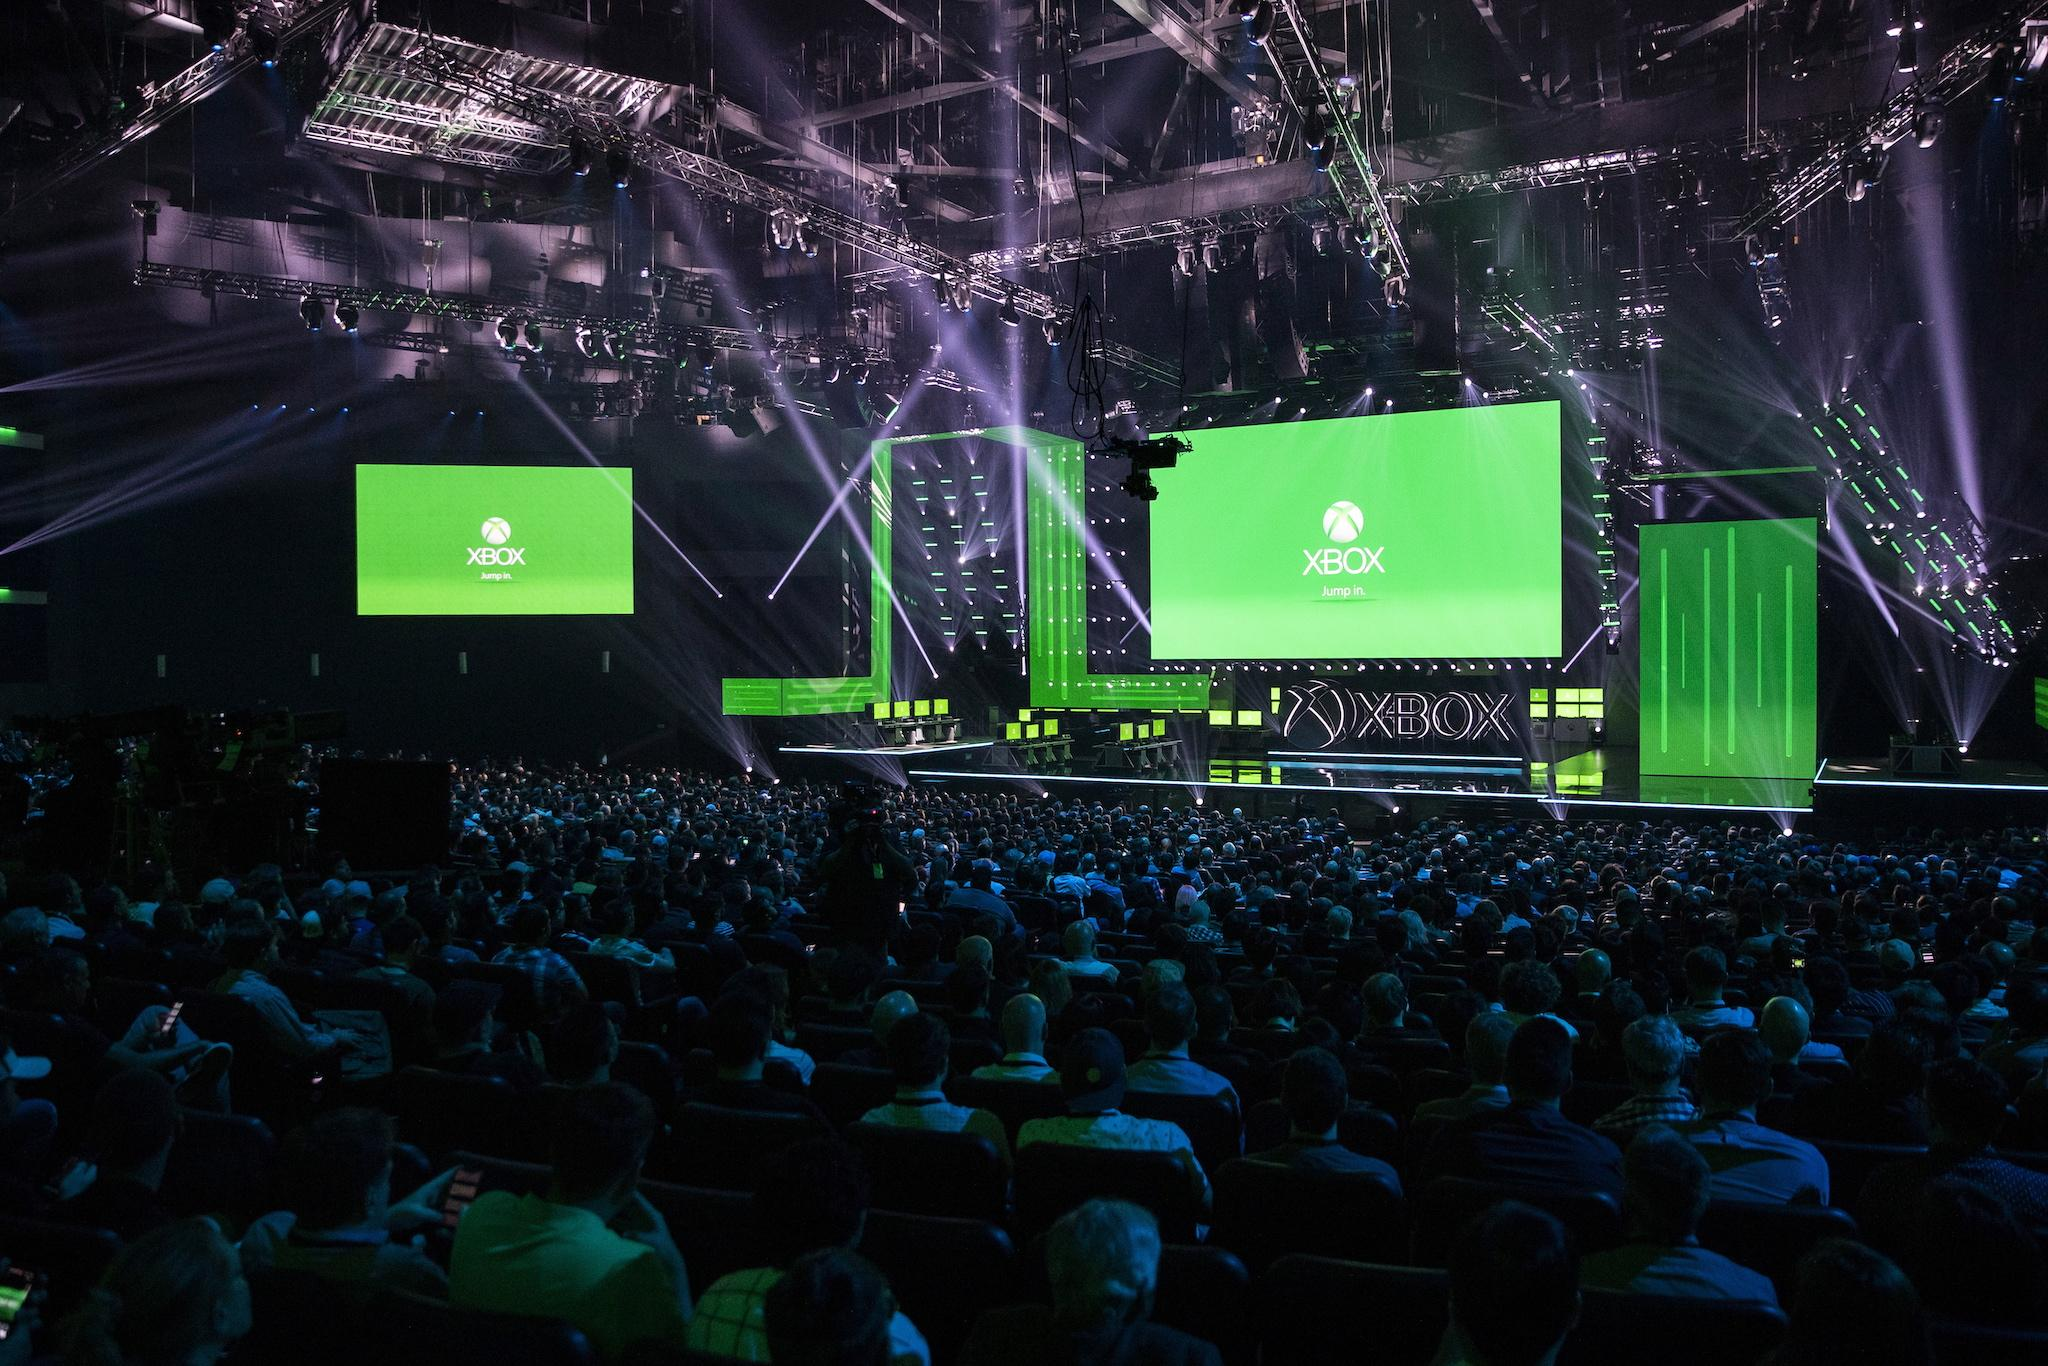 Xbox gamertags: Microsoft overhauls how accounts work in new update